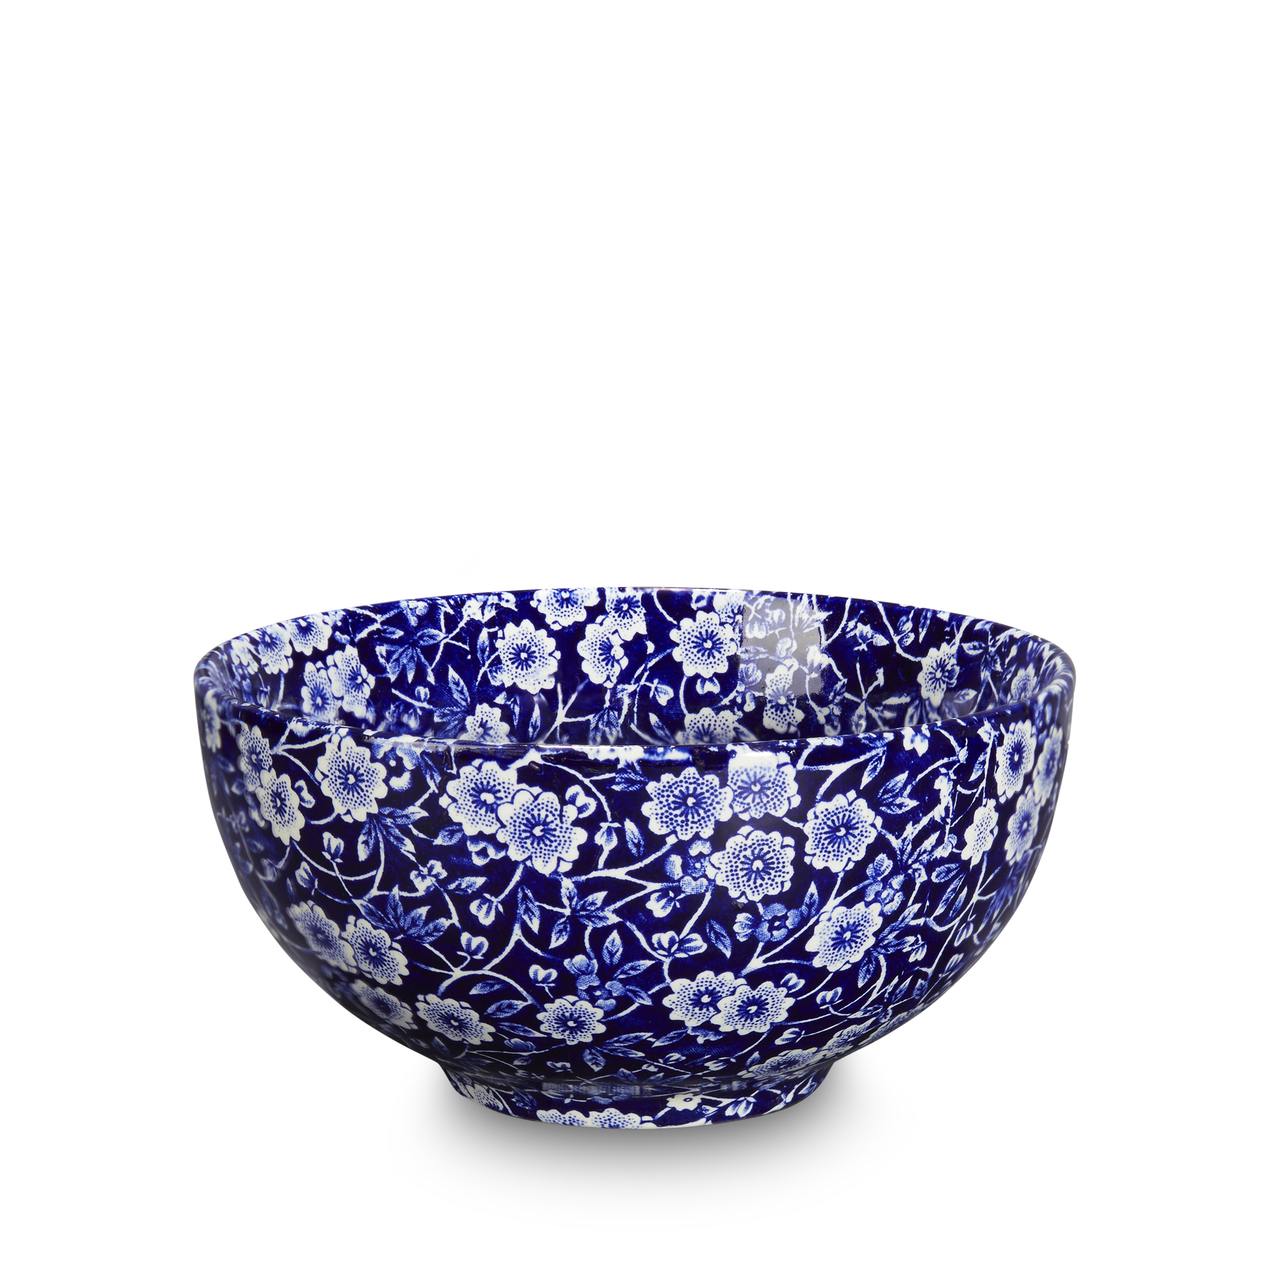 Burleigh Blue Calico | Beautiful china dinnerware to adorn your tablescapes and add to your Sasha Nicholas wedding & gift registry